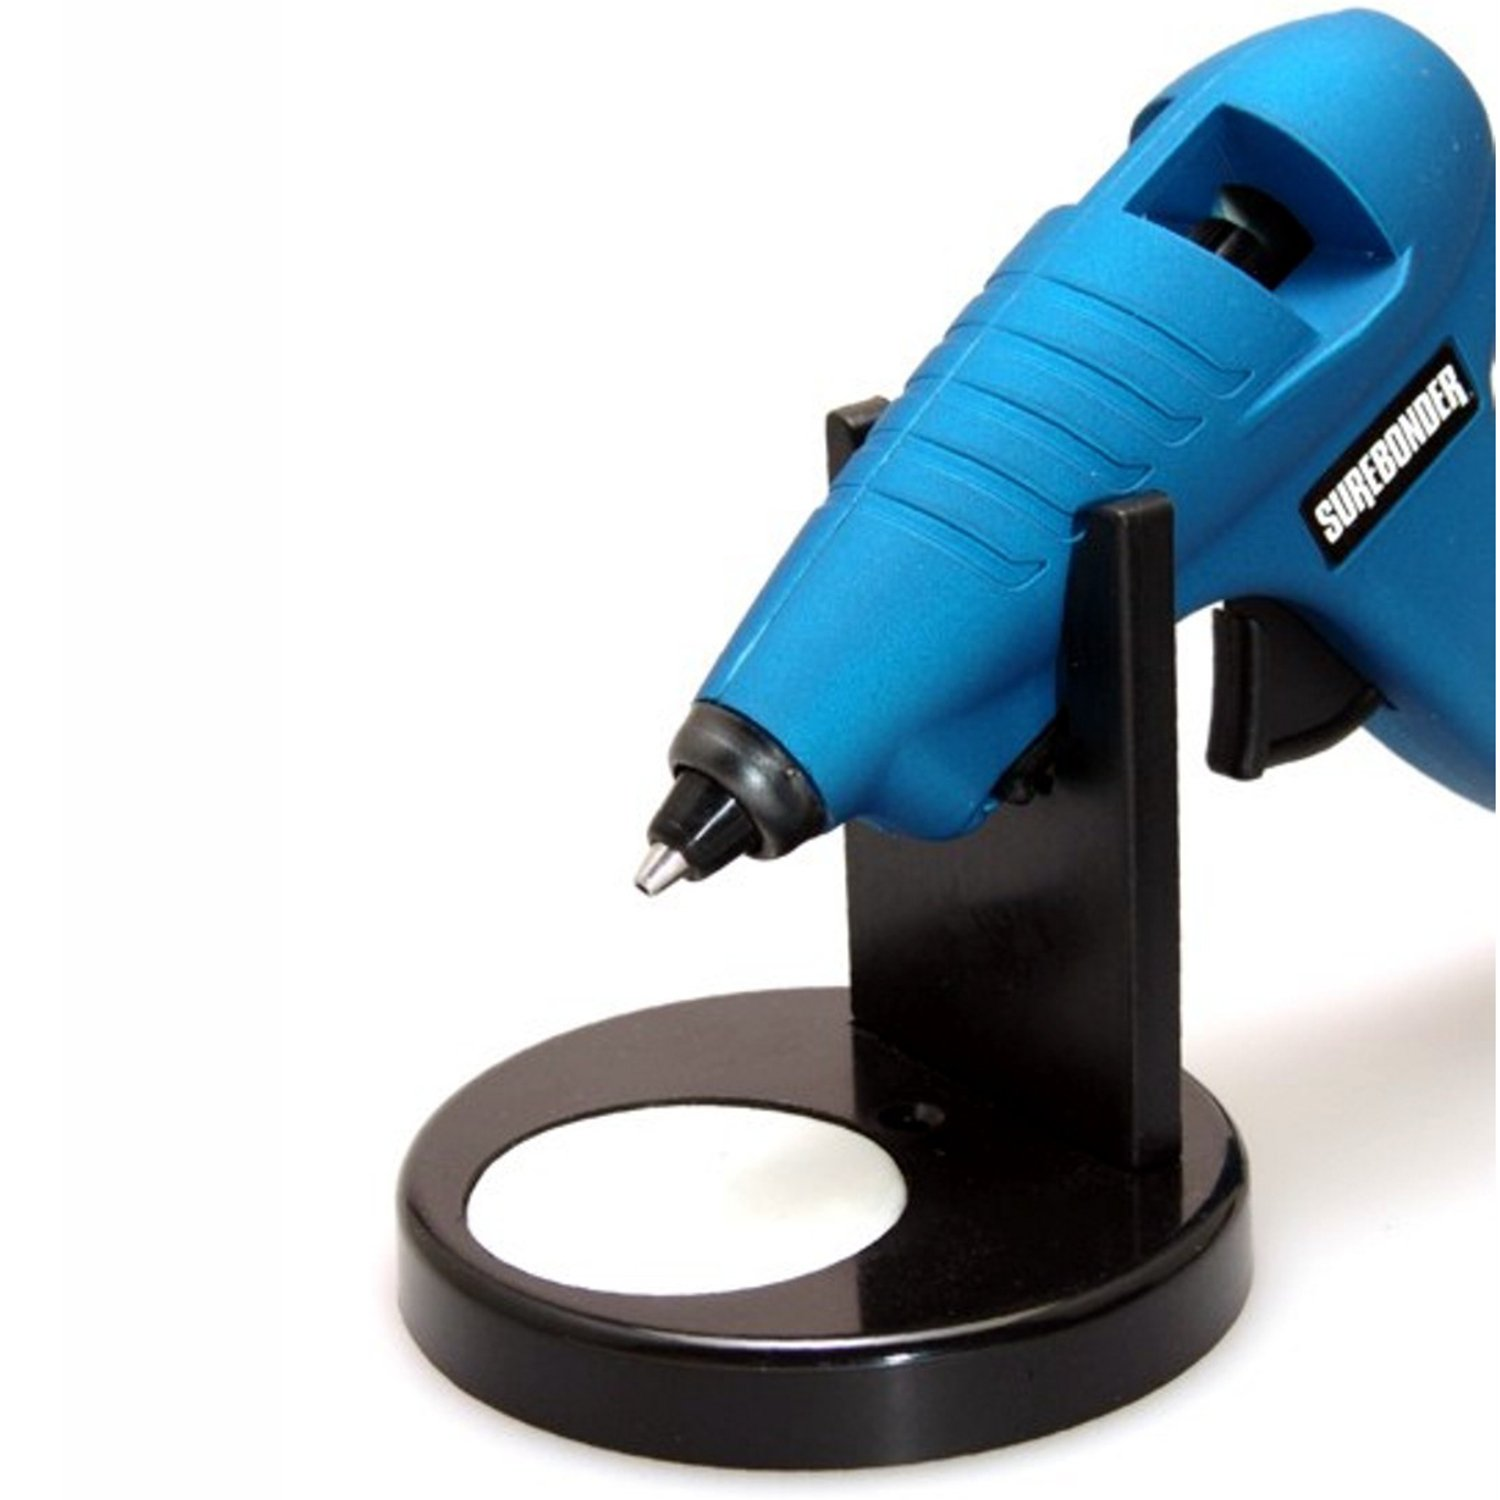 Surebonder 6500N Glue Gun Stand with Non-Stick Glue Pad-Black FPC CORPORATION